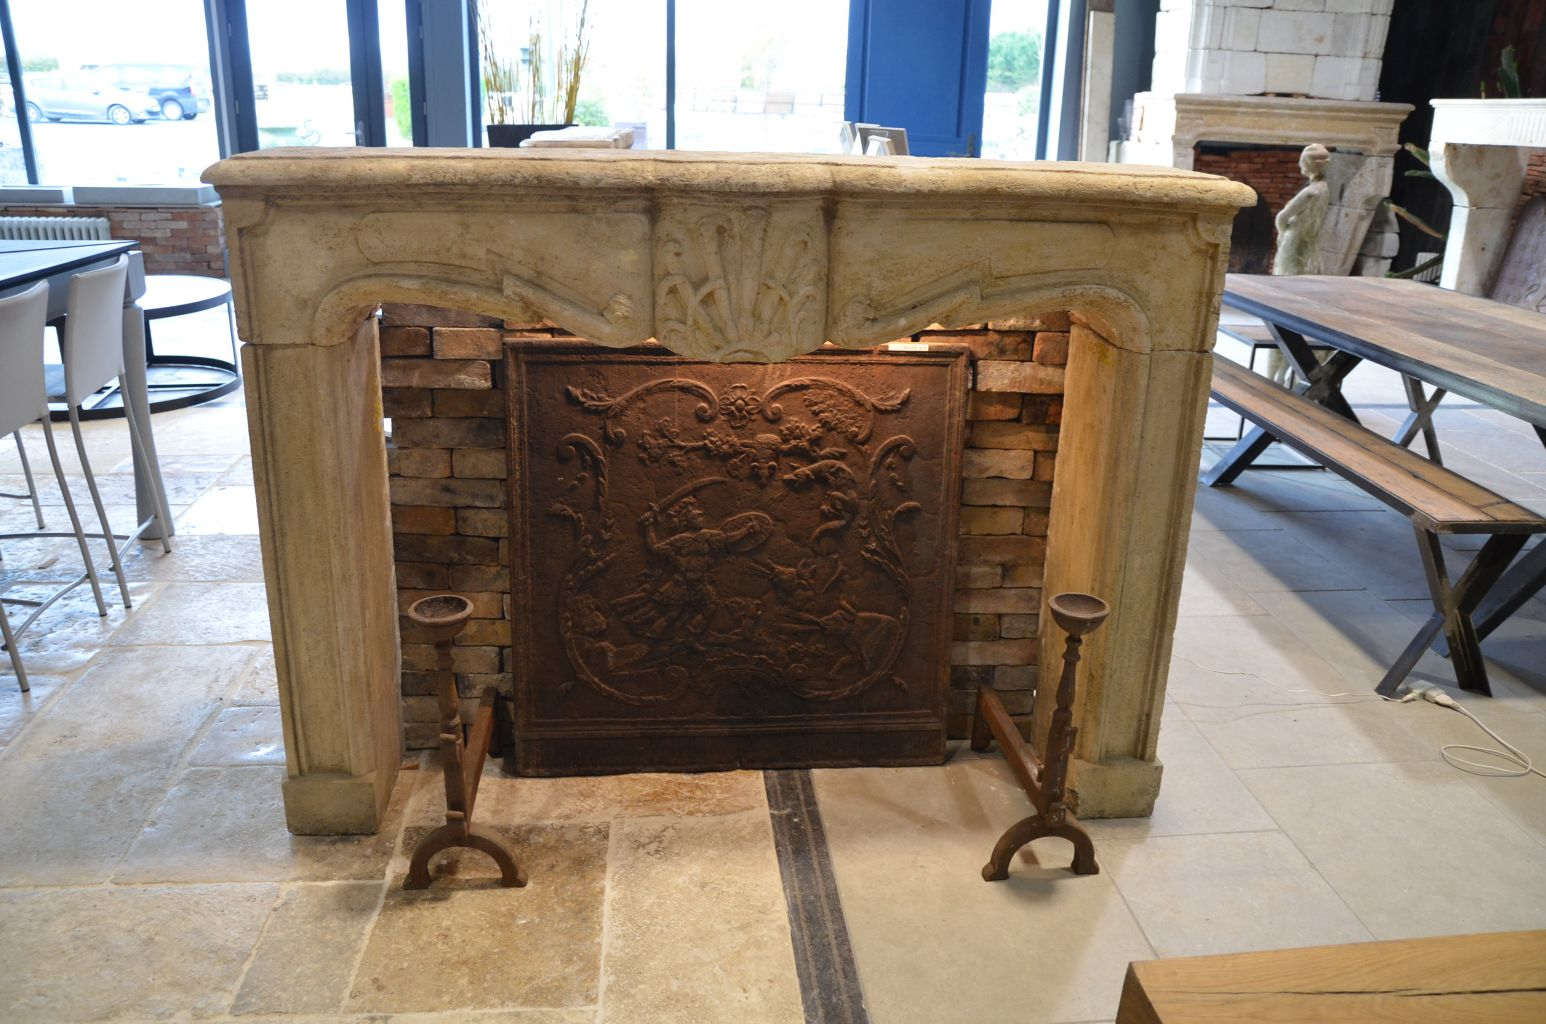 Antique Louis Xiv Fireplace In French Limestone